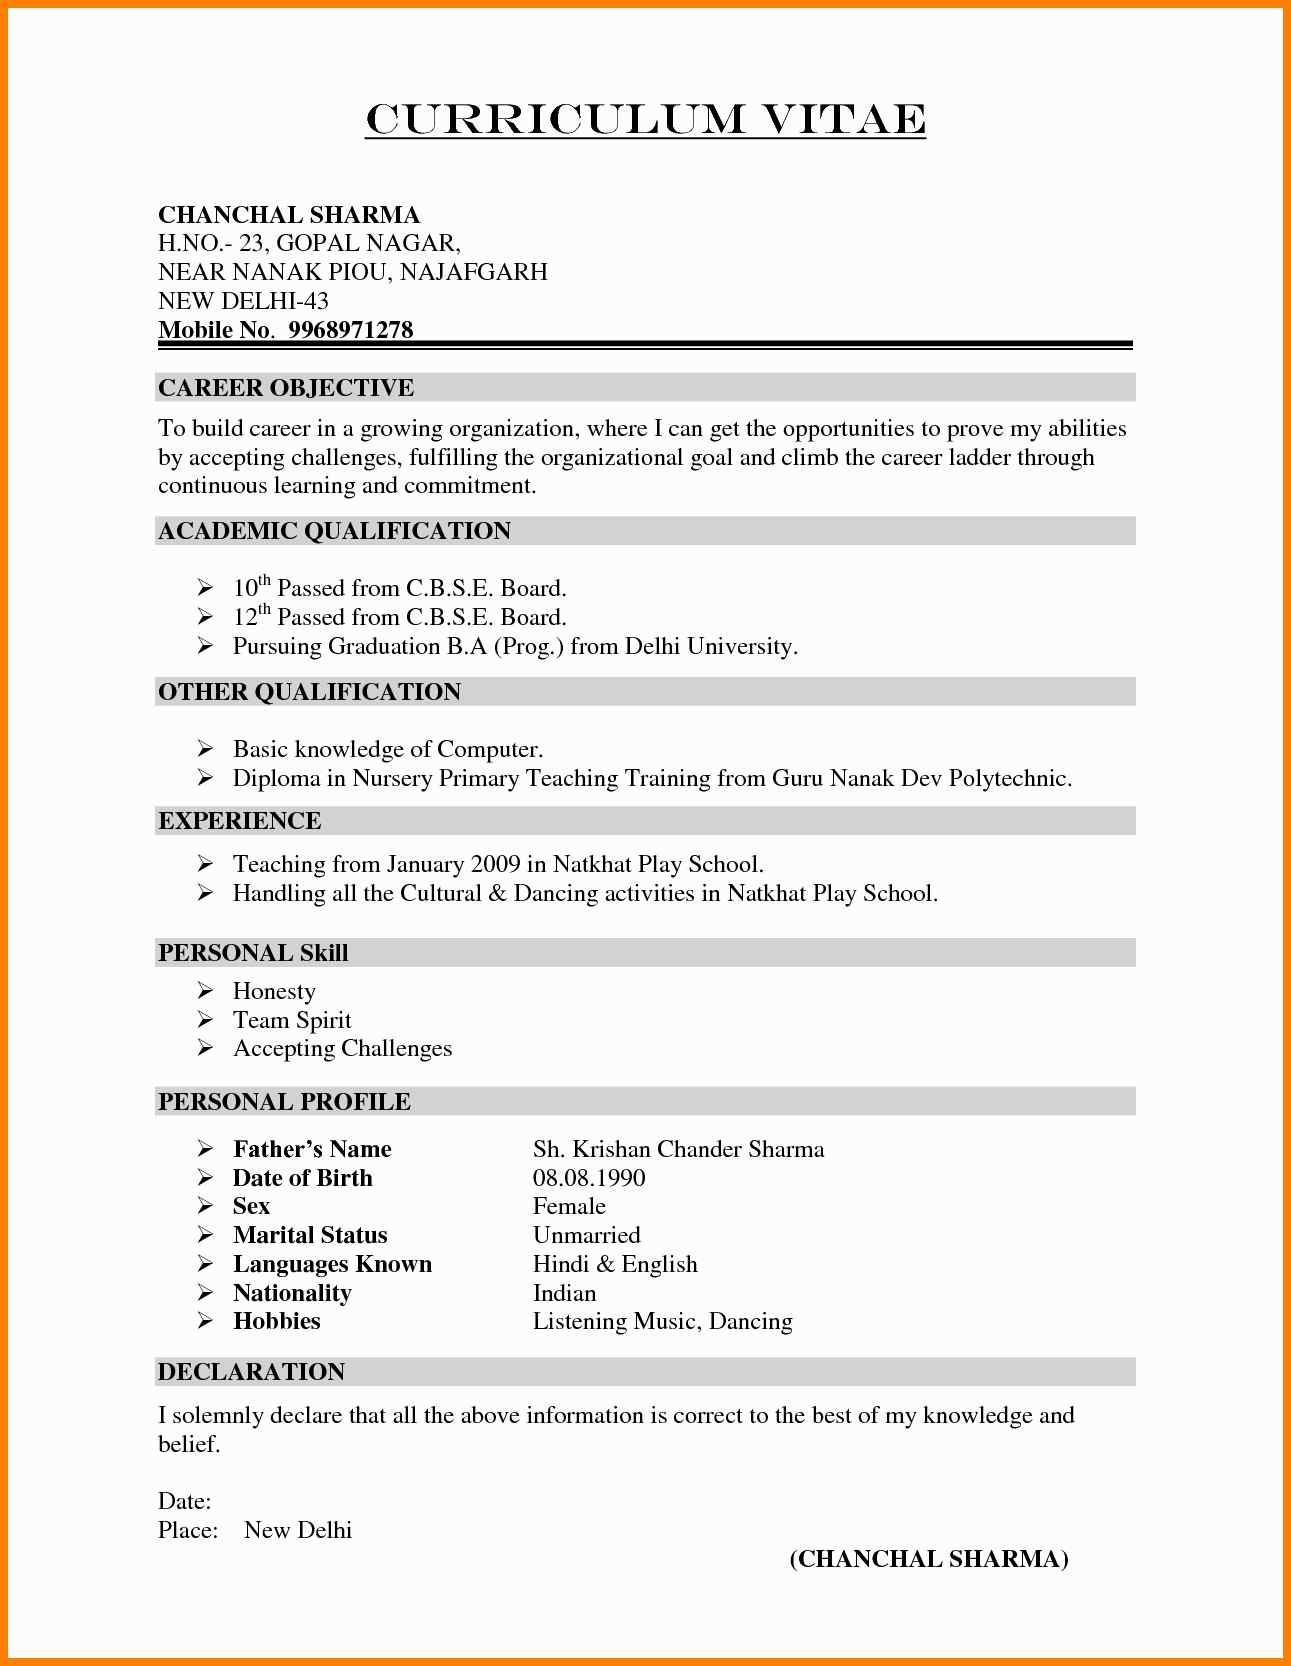 Curriculum Vitae For Teachers Resume Fresher Format Unique